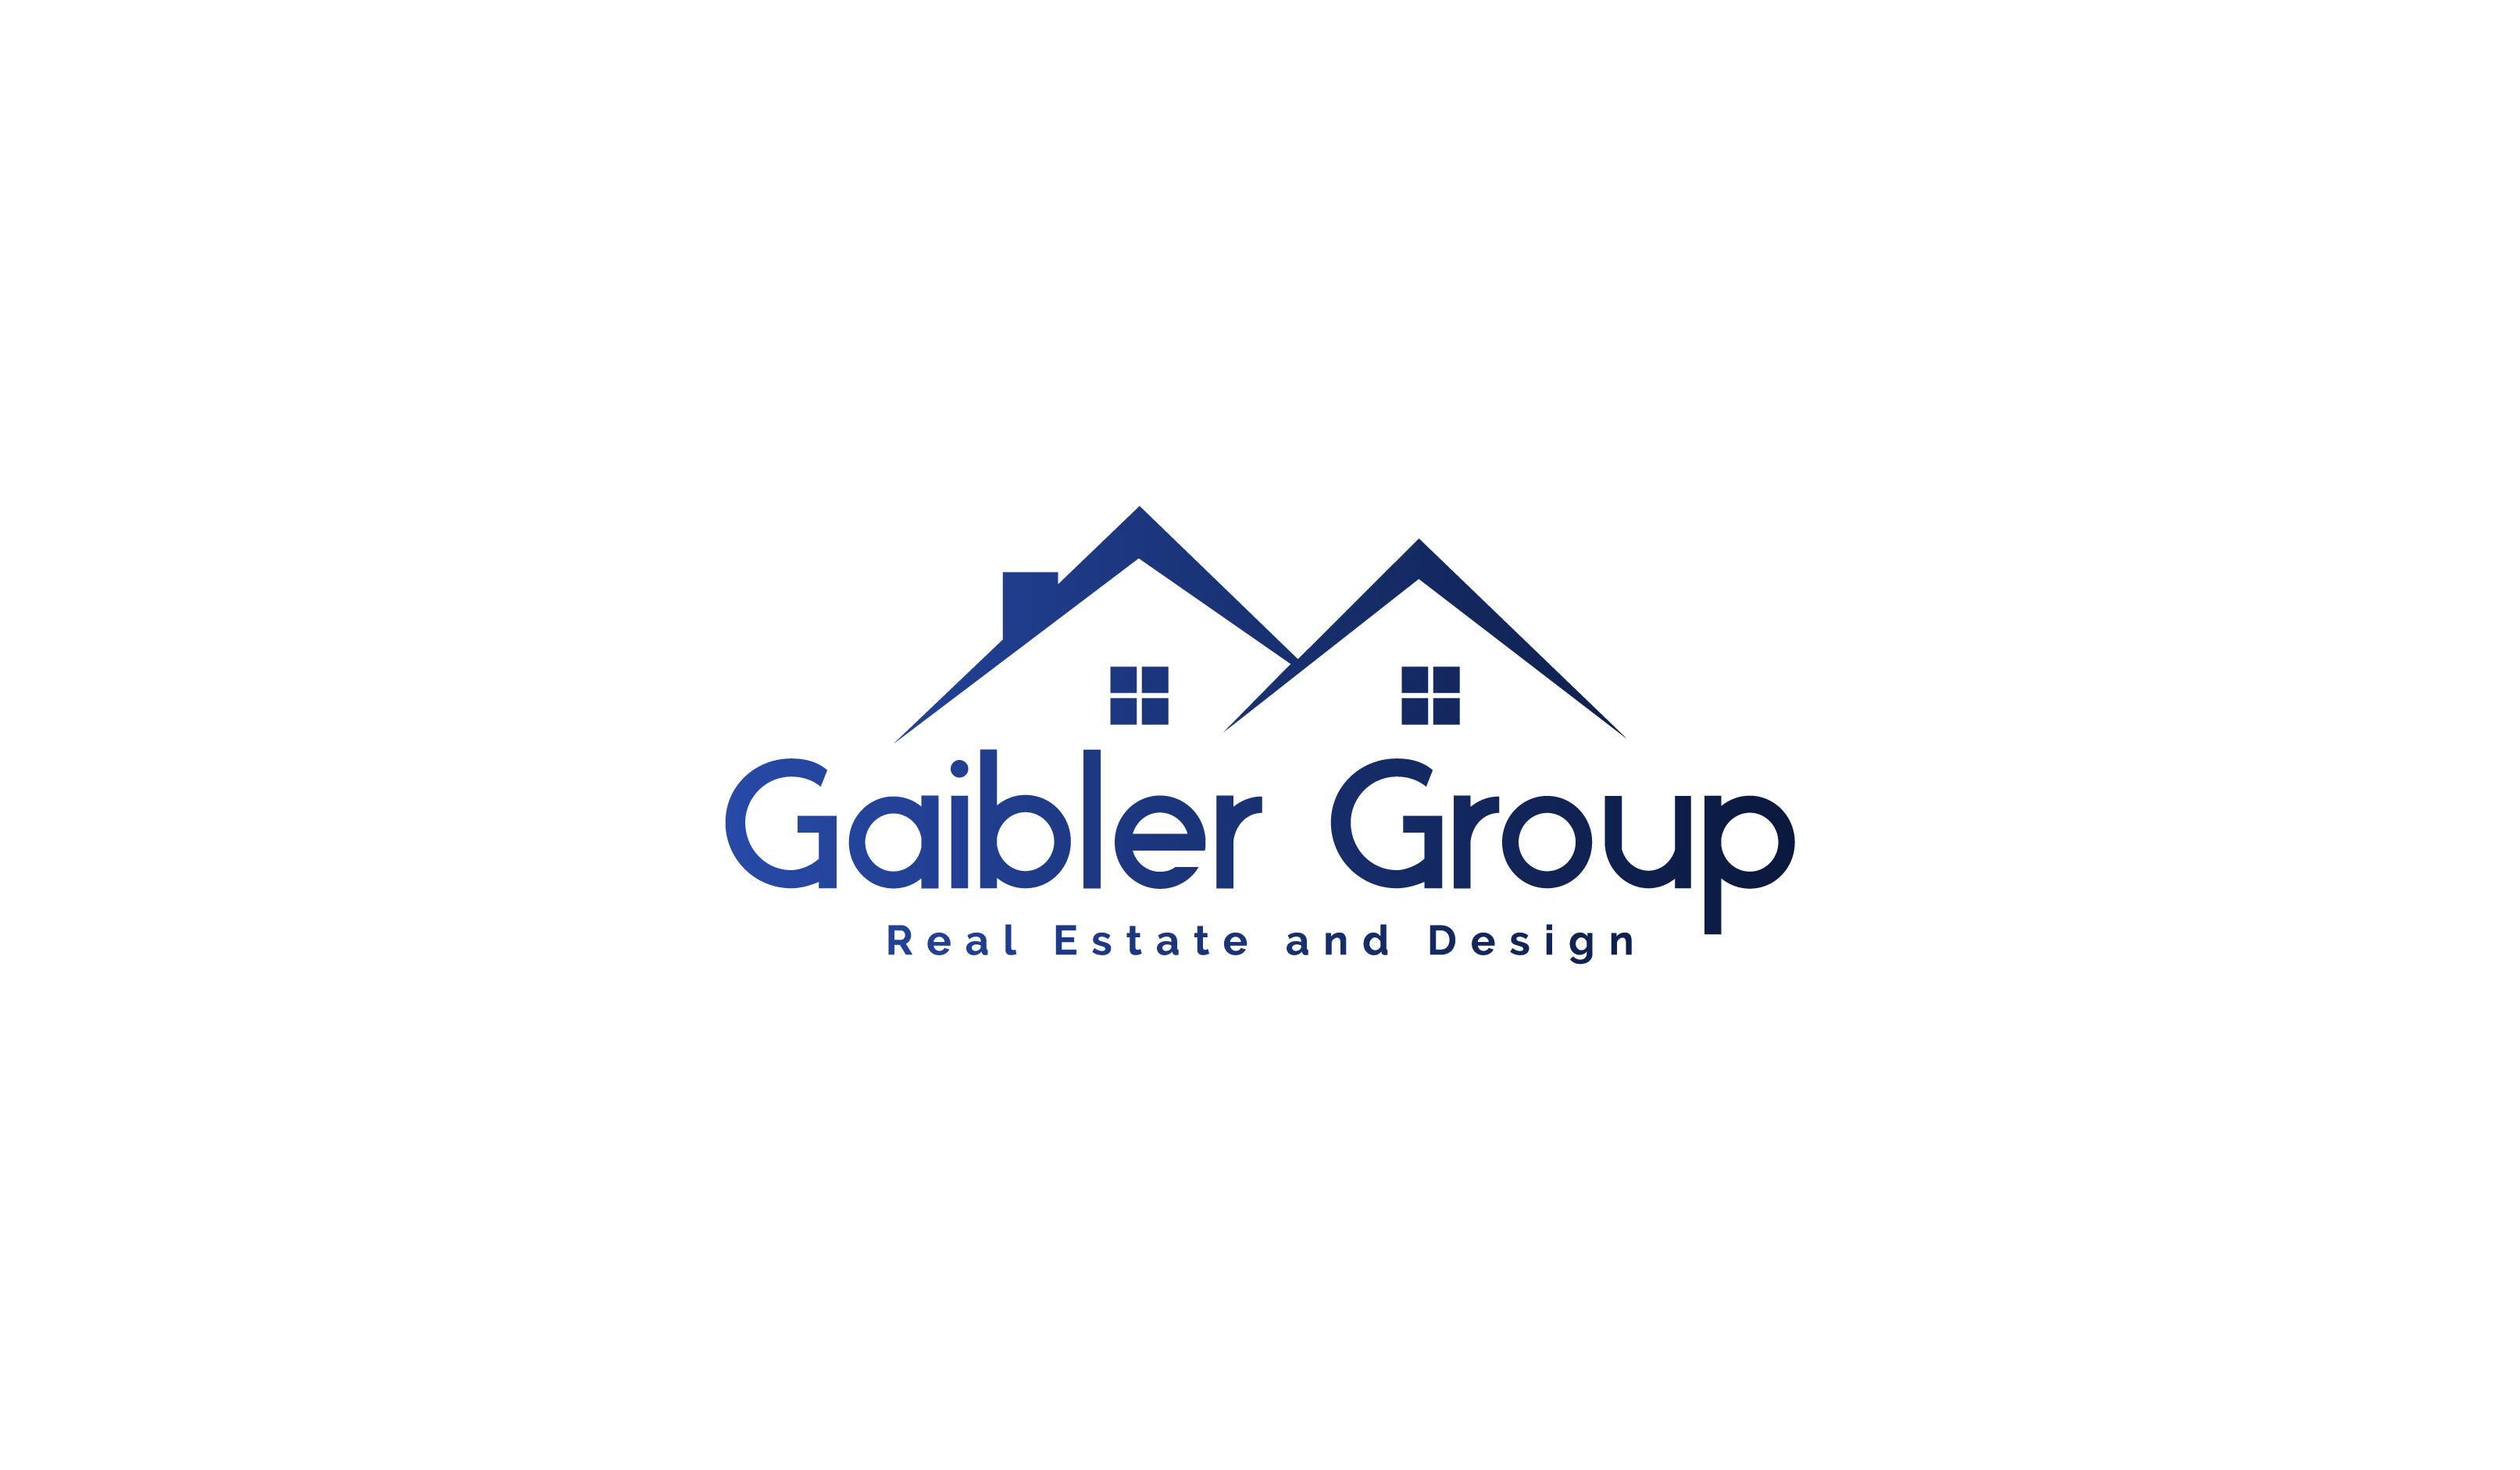 Gaibler Group Real Estate and Design